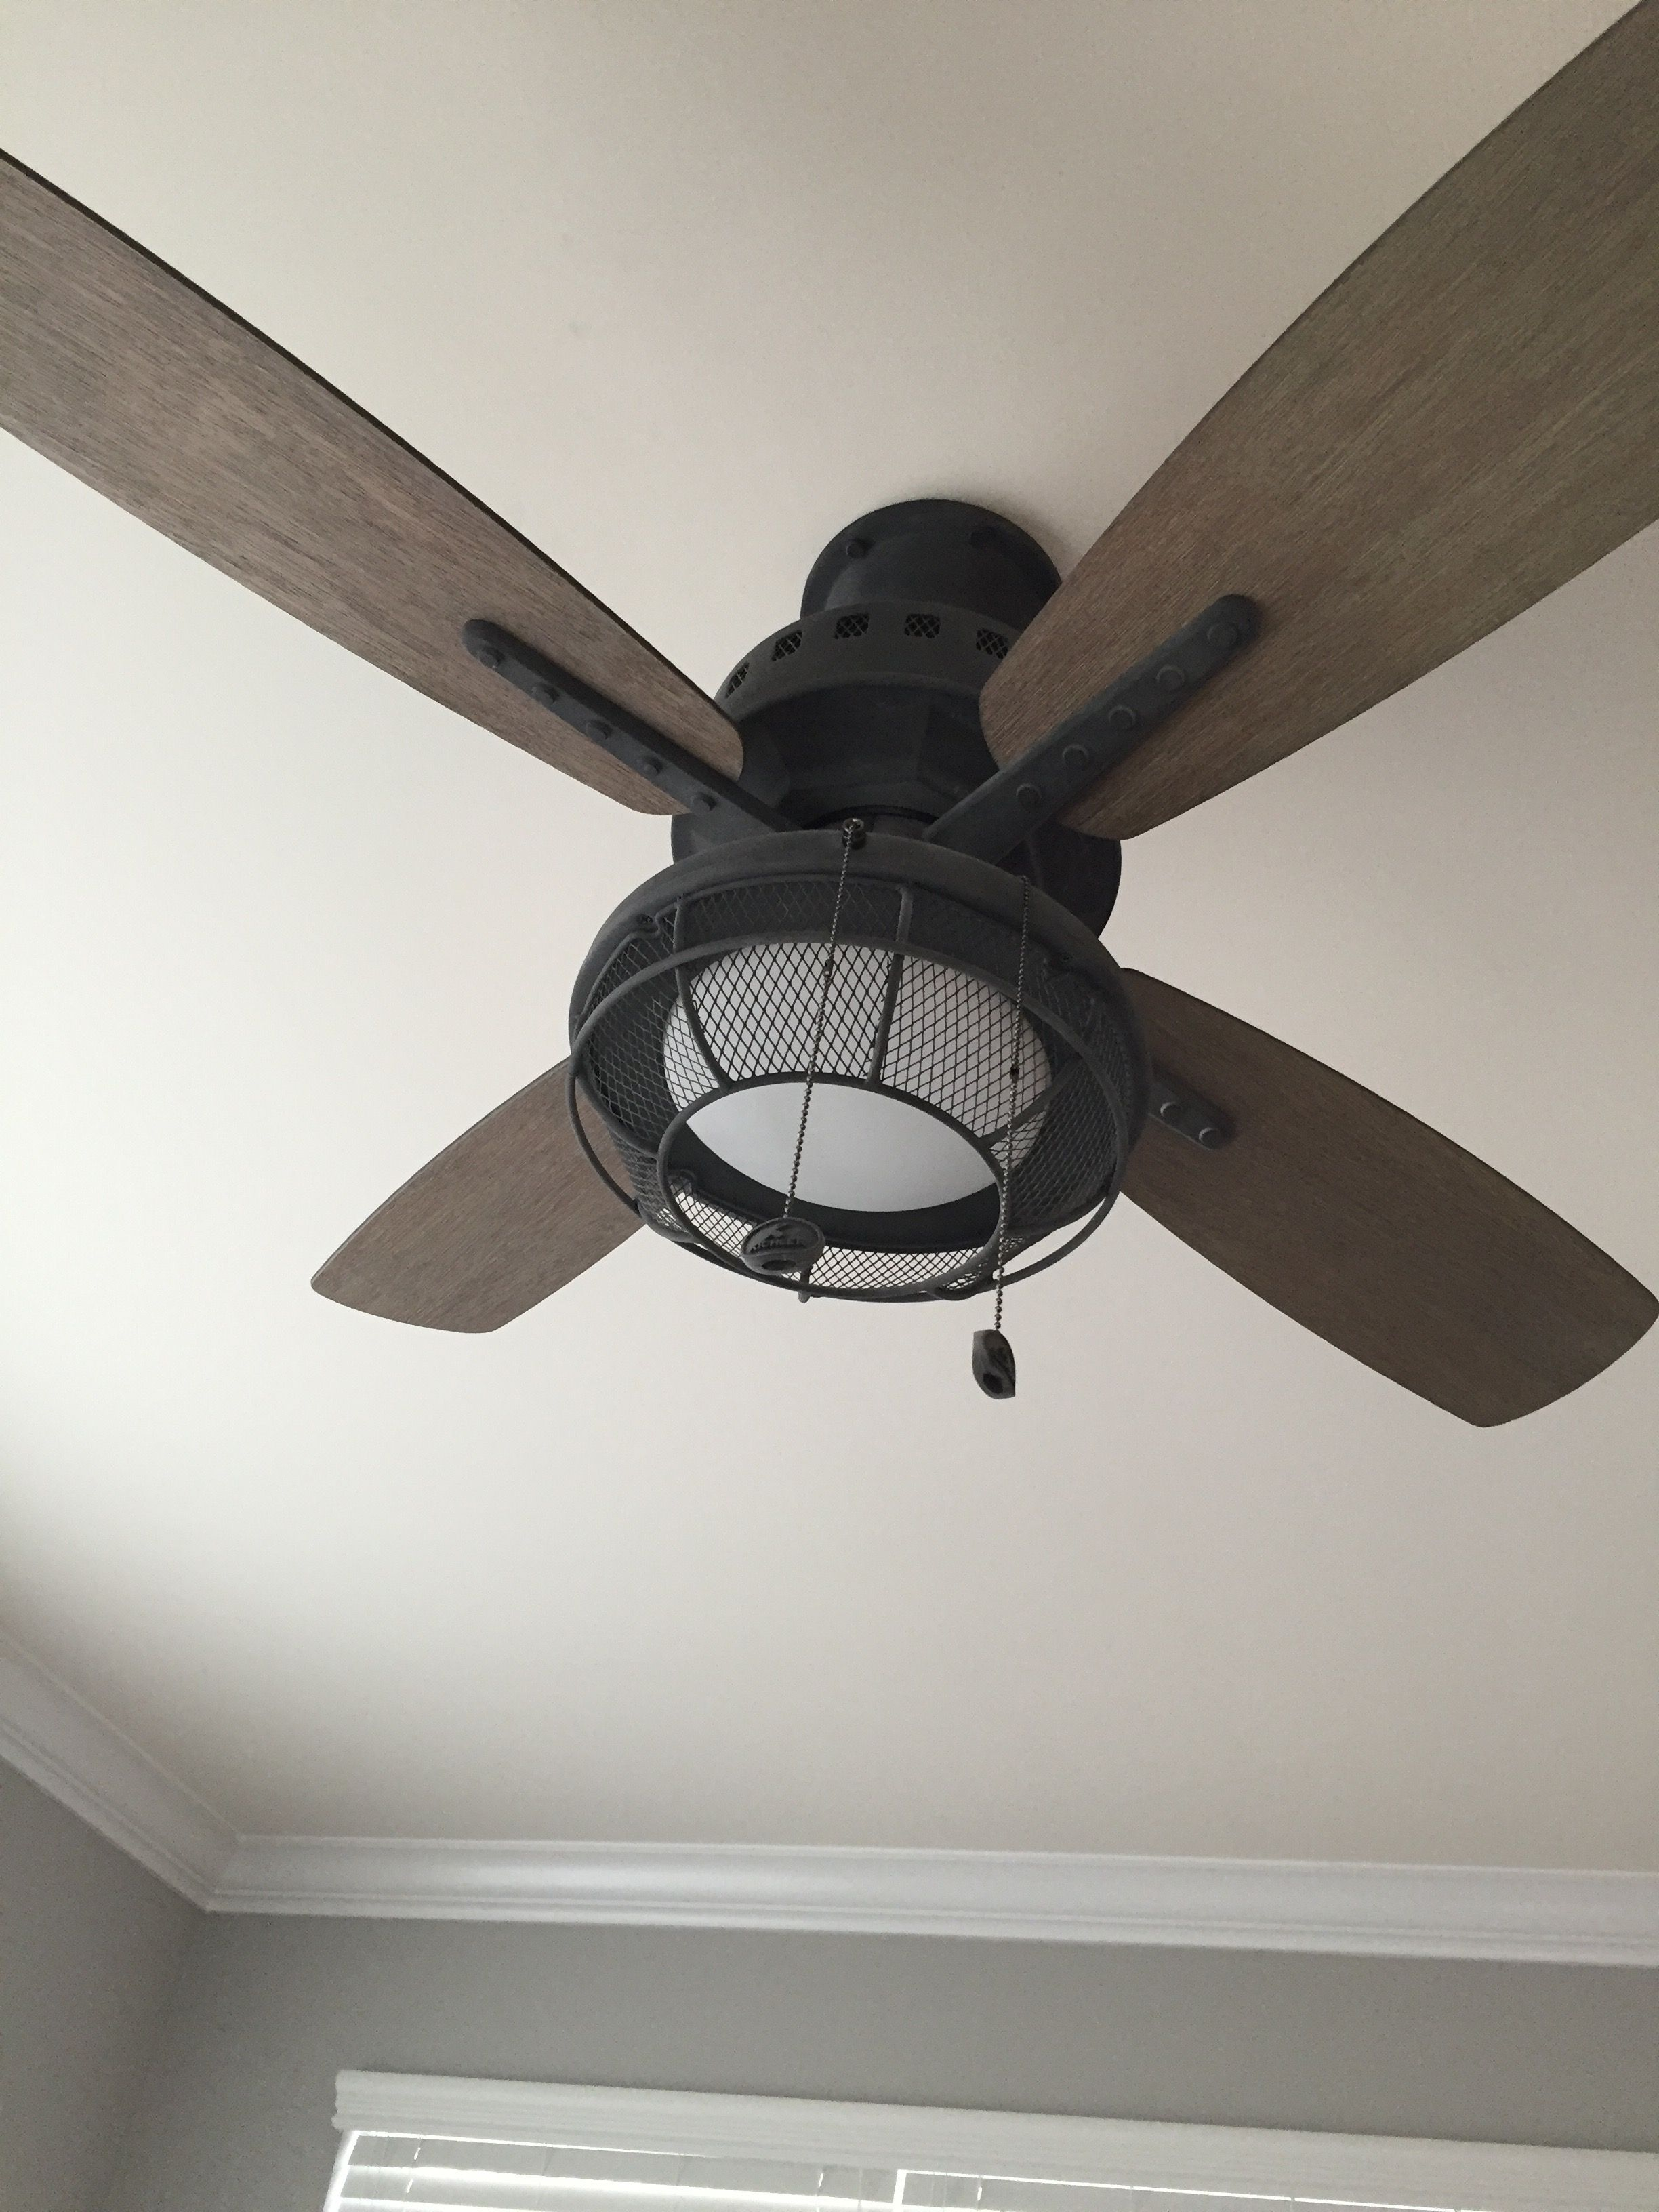 Farmhouse Industrial Ceiling Fans Farmhouse Ceiling Fan Industrial Ceiling Fan Ceiling Fan Bedroom